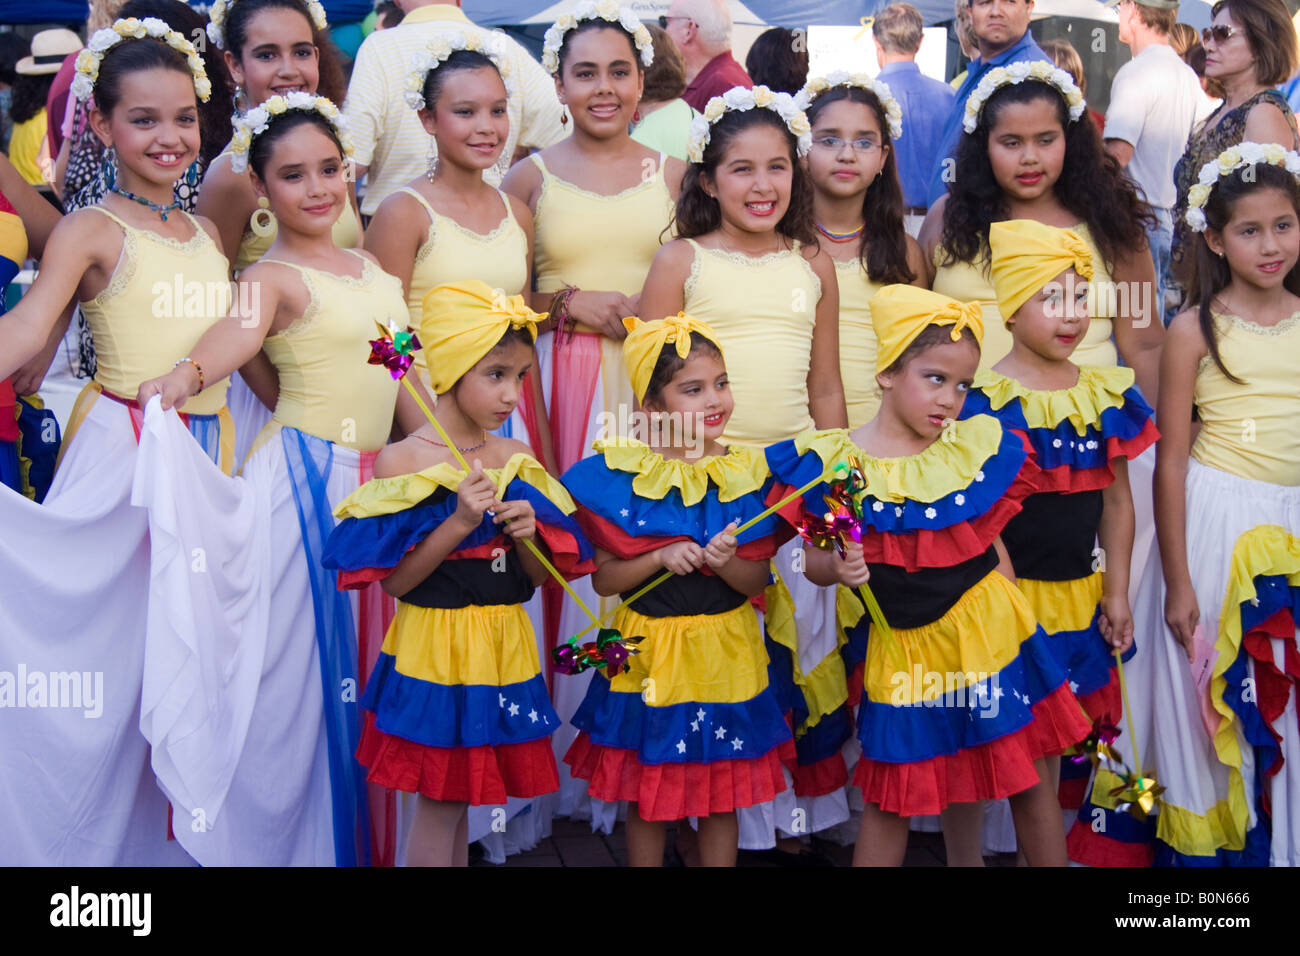 Young girls in costume pose for photograph  before giving a dance exhibit during a Latin Festival in Florida - Stock Image